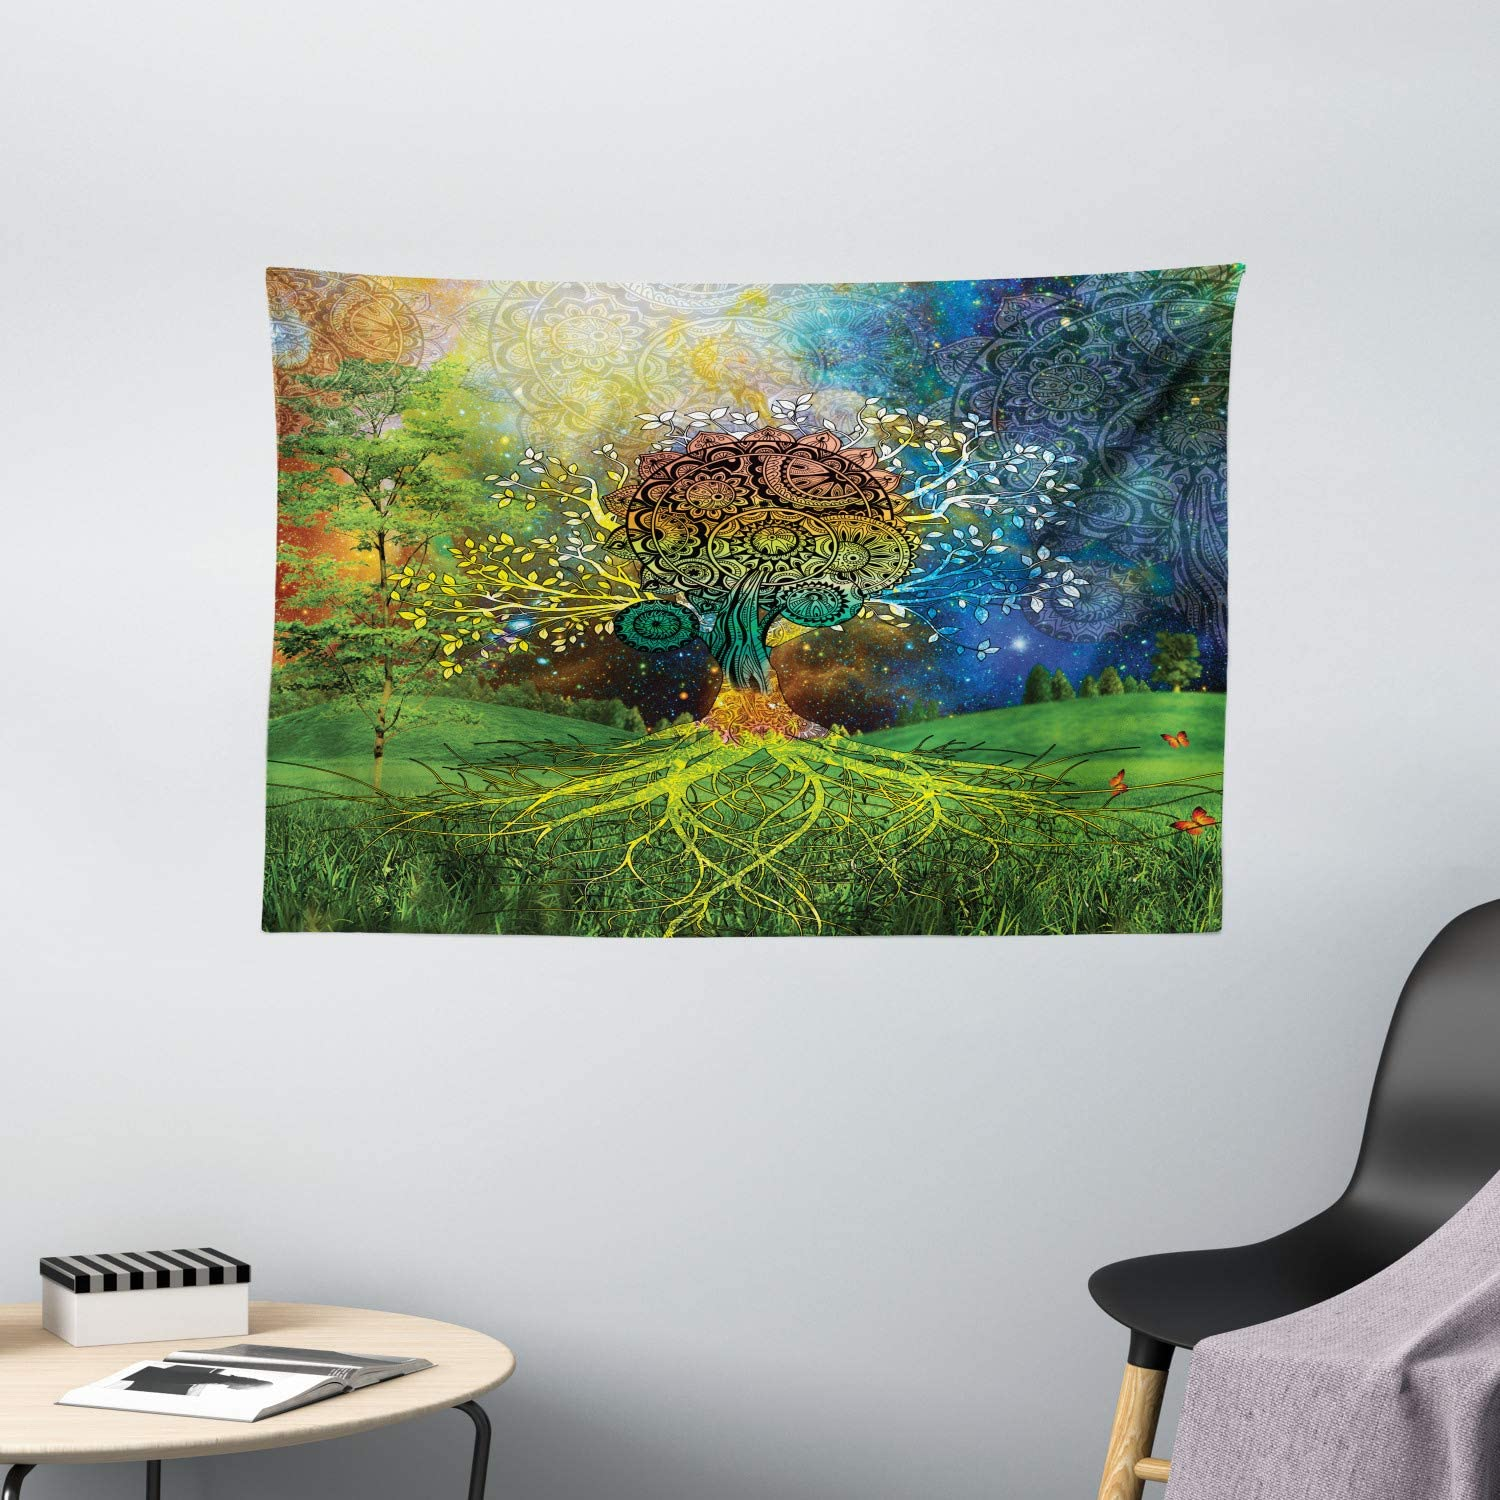 """Ambesonne Ethnic Tapestry, Tree in The Valley with Spiral Branch Balance in Mother Earth Art Illustration, Wide Wall Hanging for Bedroom Living Room Dorm, 60"""" X 40"""", Green Multicolor"""